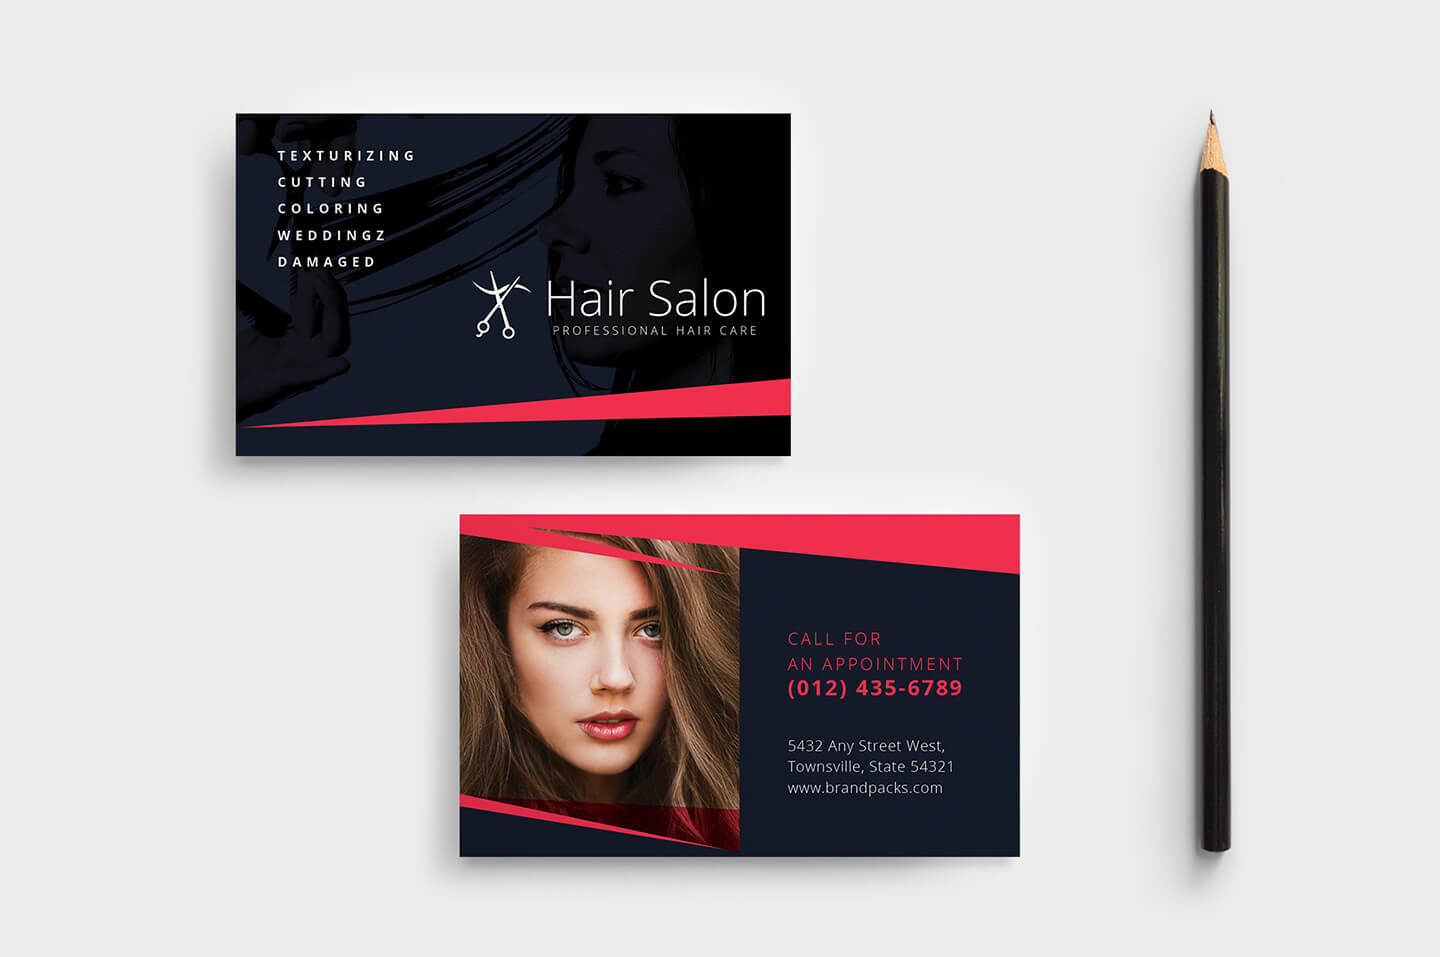 Hair Salon Business Card Template In Psd, Ai & Vector Inside Hair Salon Business Card Template